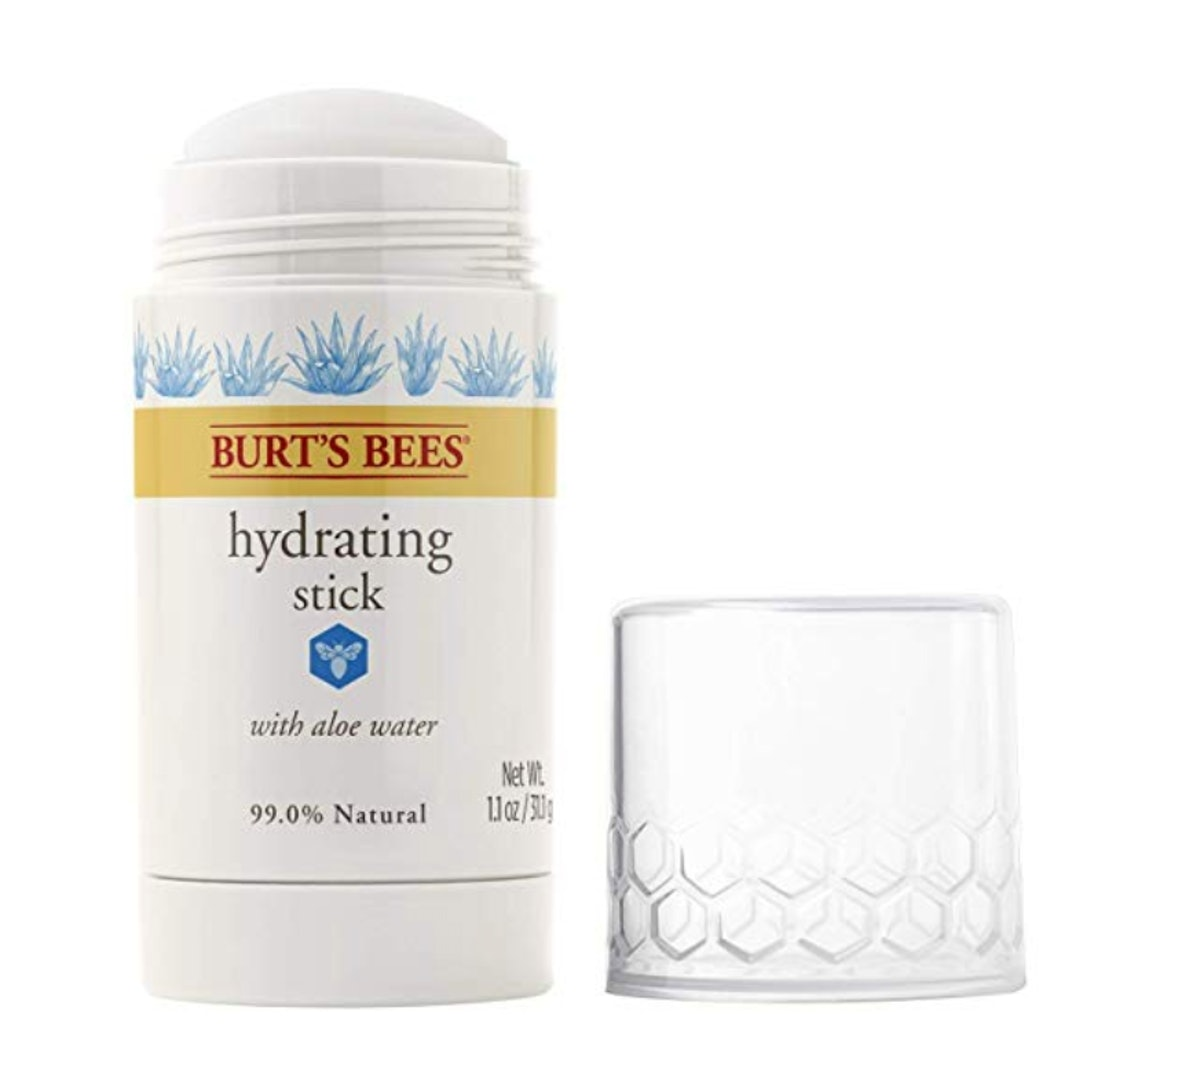 Burt's Bees Hydrating Stick with Aloe Water